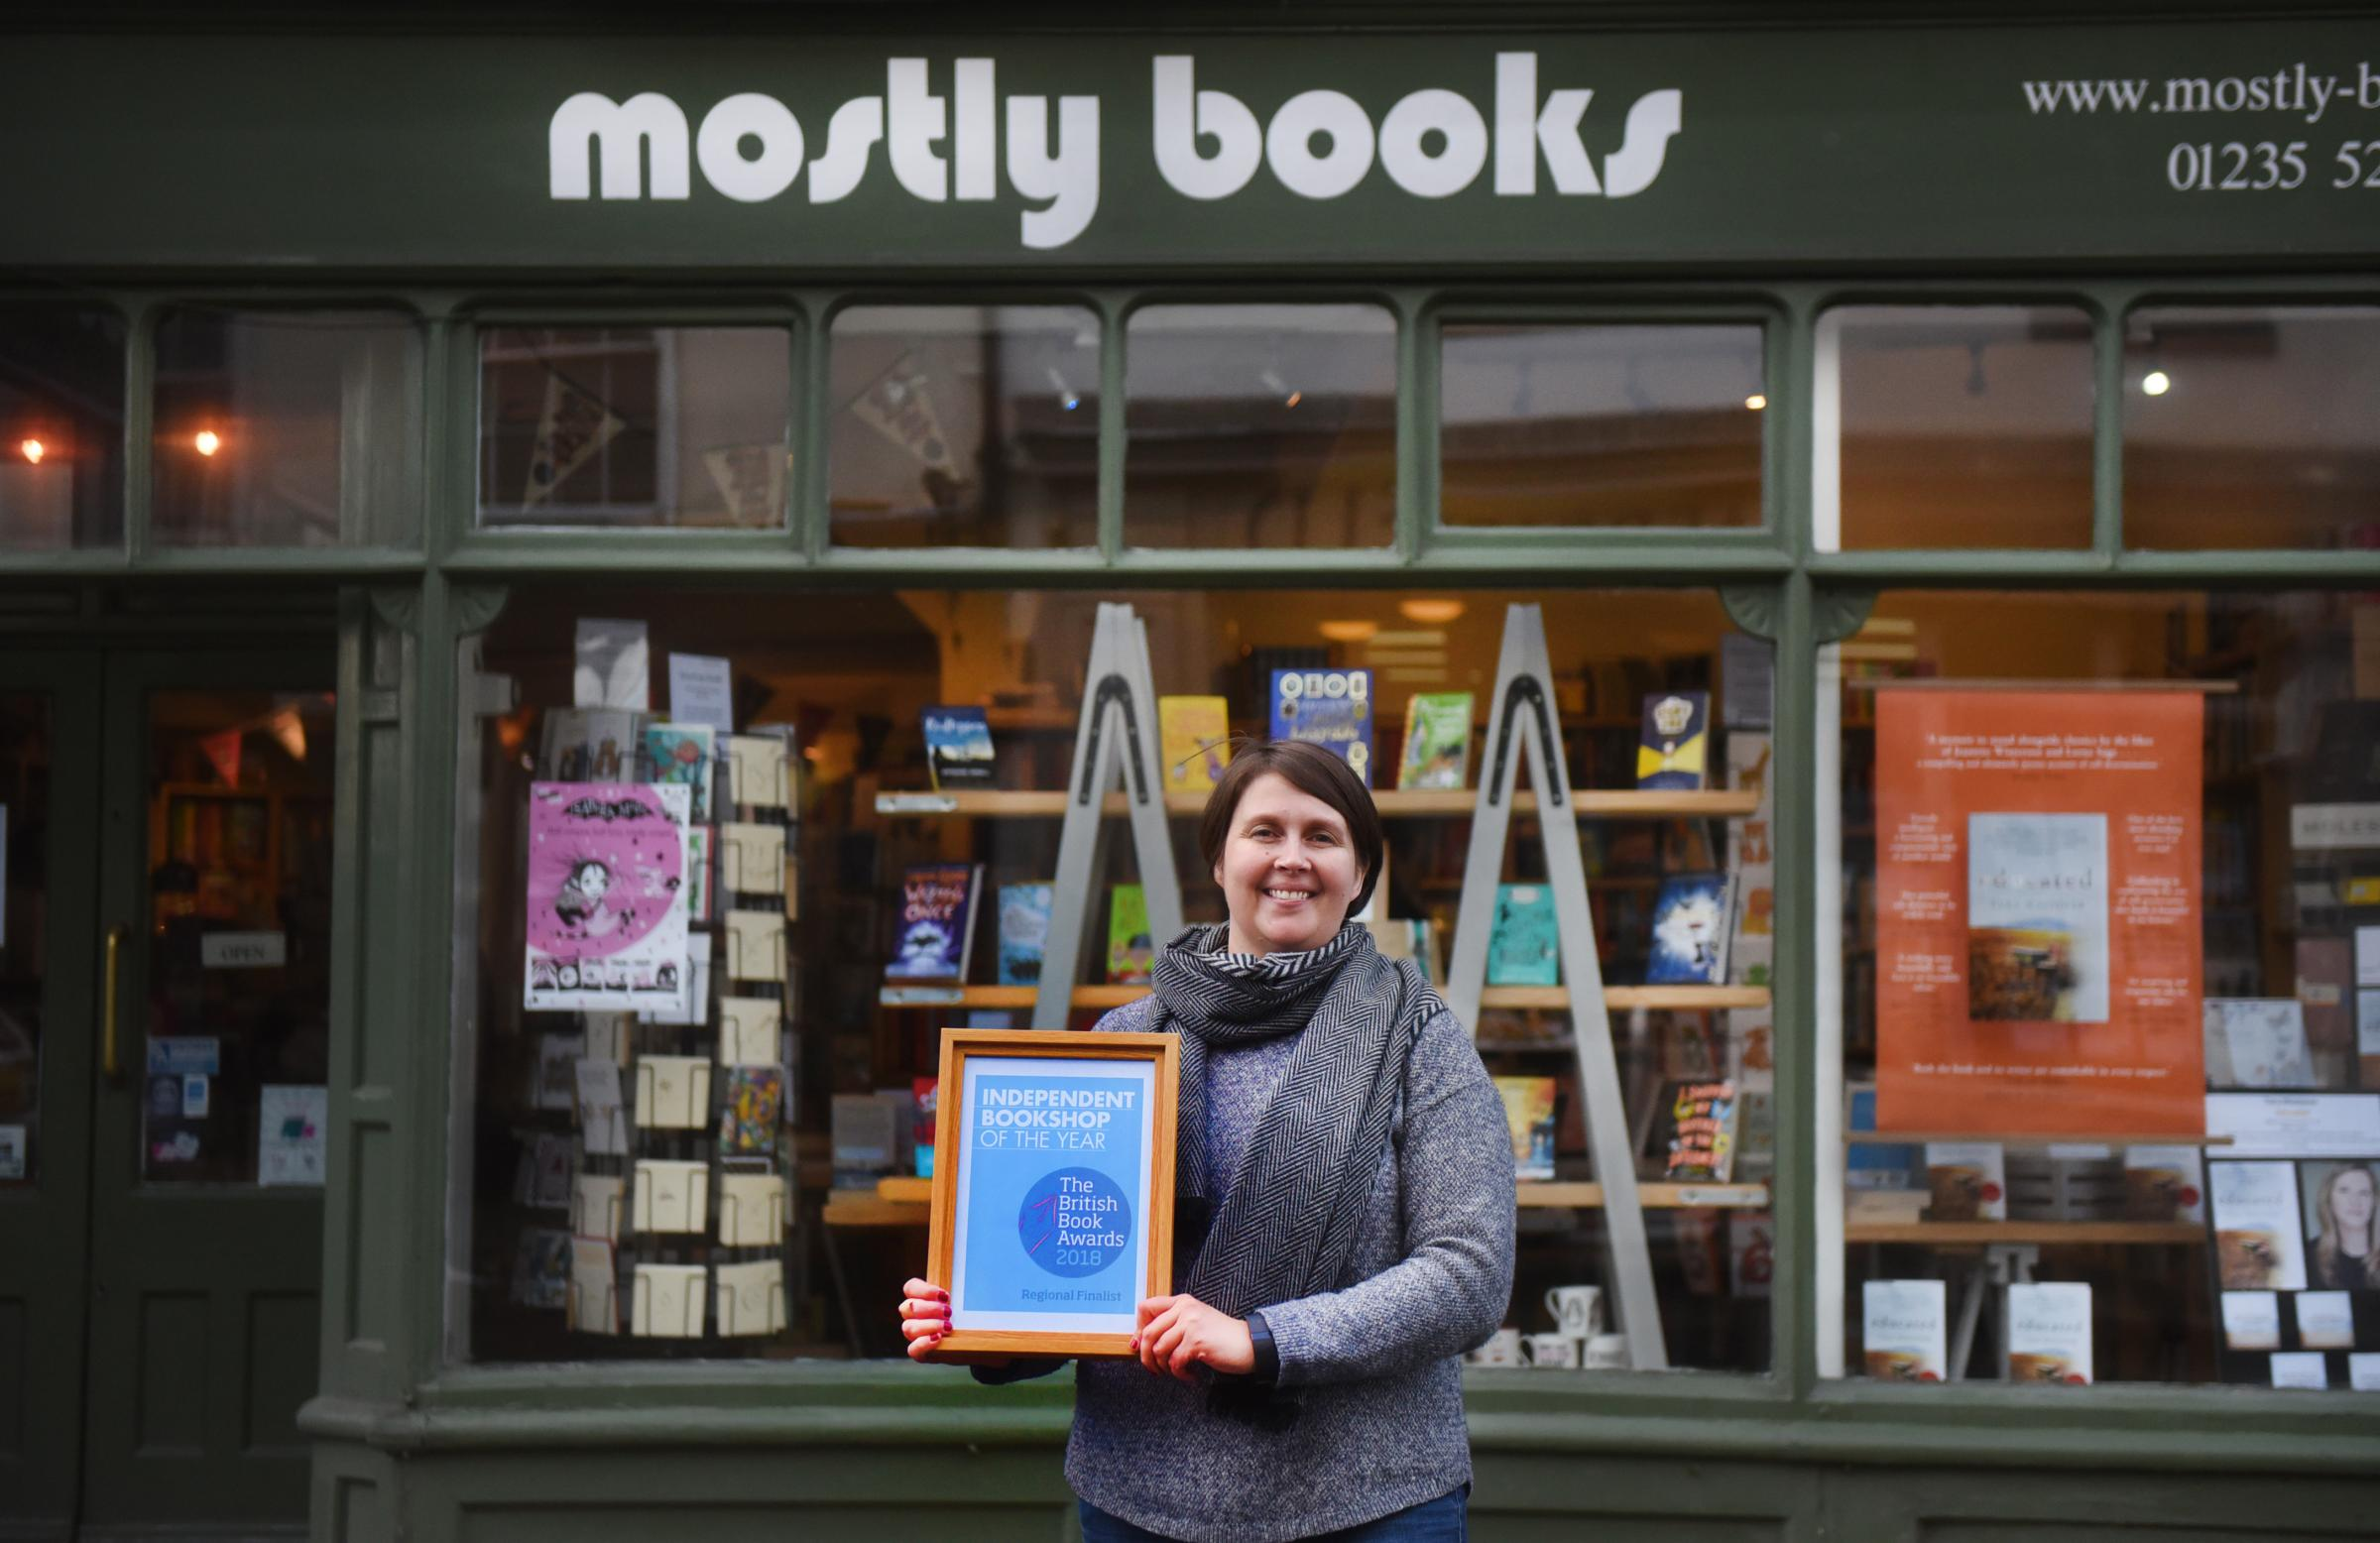 Owner Sarah Dennis at Mostly Books, Abingdon..Mostly Books has been shortlisted for best independent book shop in the south east.... Picture Richard Cave  27.02.18.